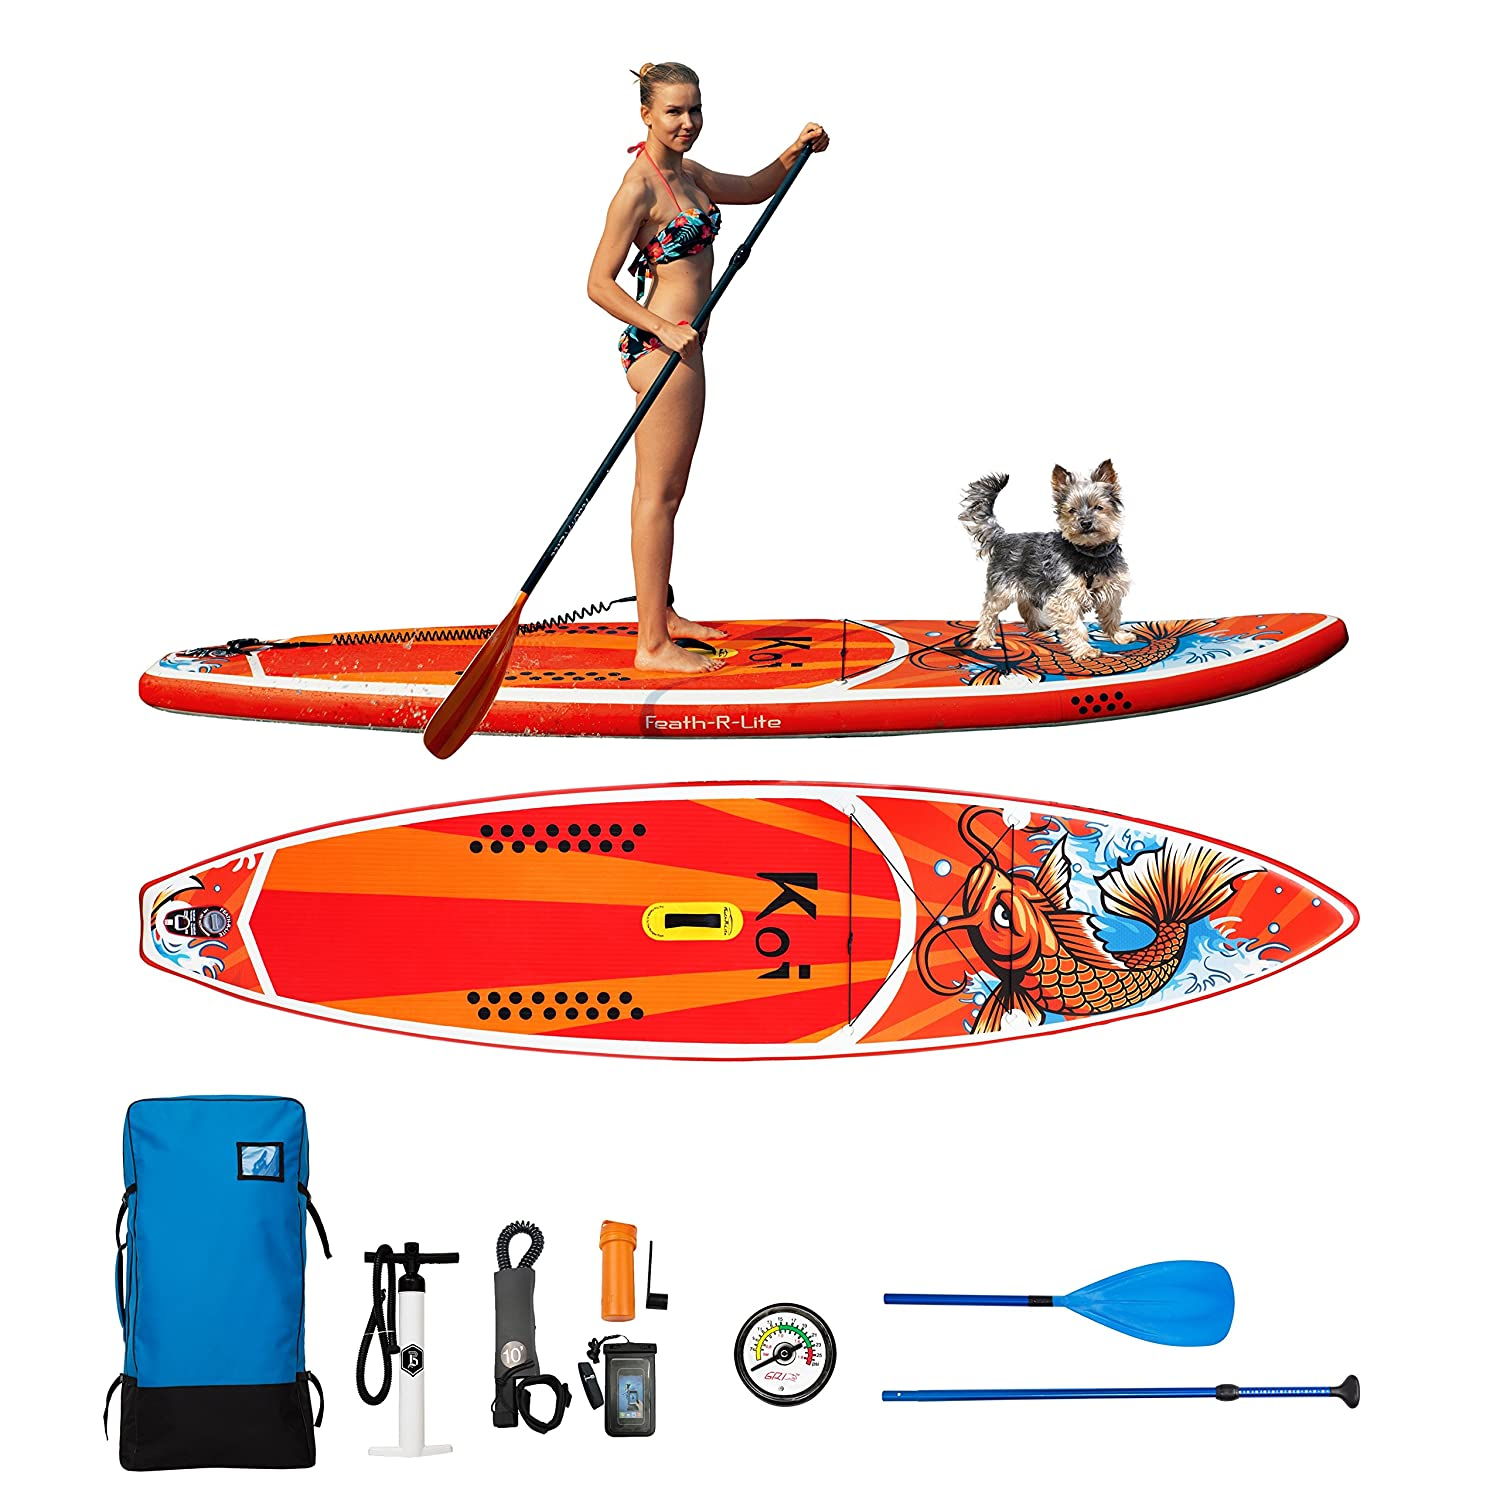 Feath-R-Lite Inflatable Stand Up Paddle Board Includes Pump, Paddle, Backpack, Coil Leash,Fin and Universal Waterproof Case